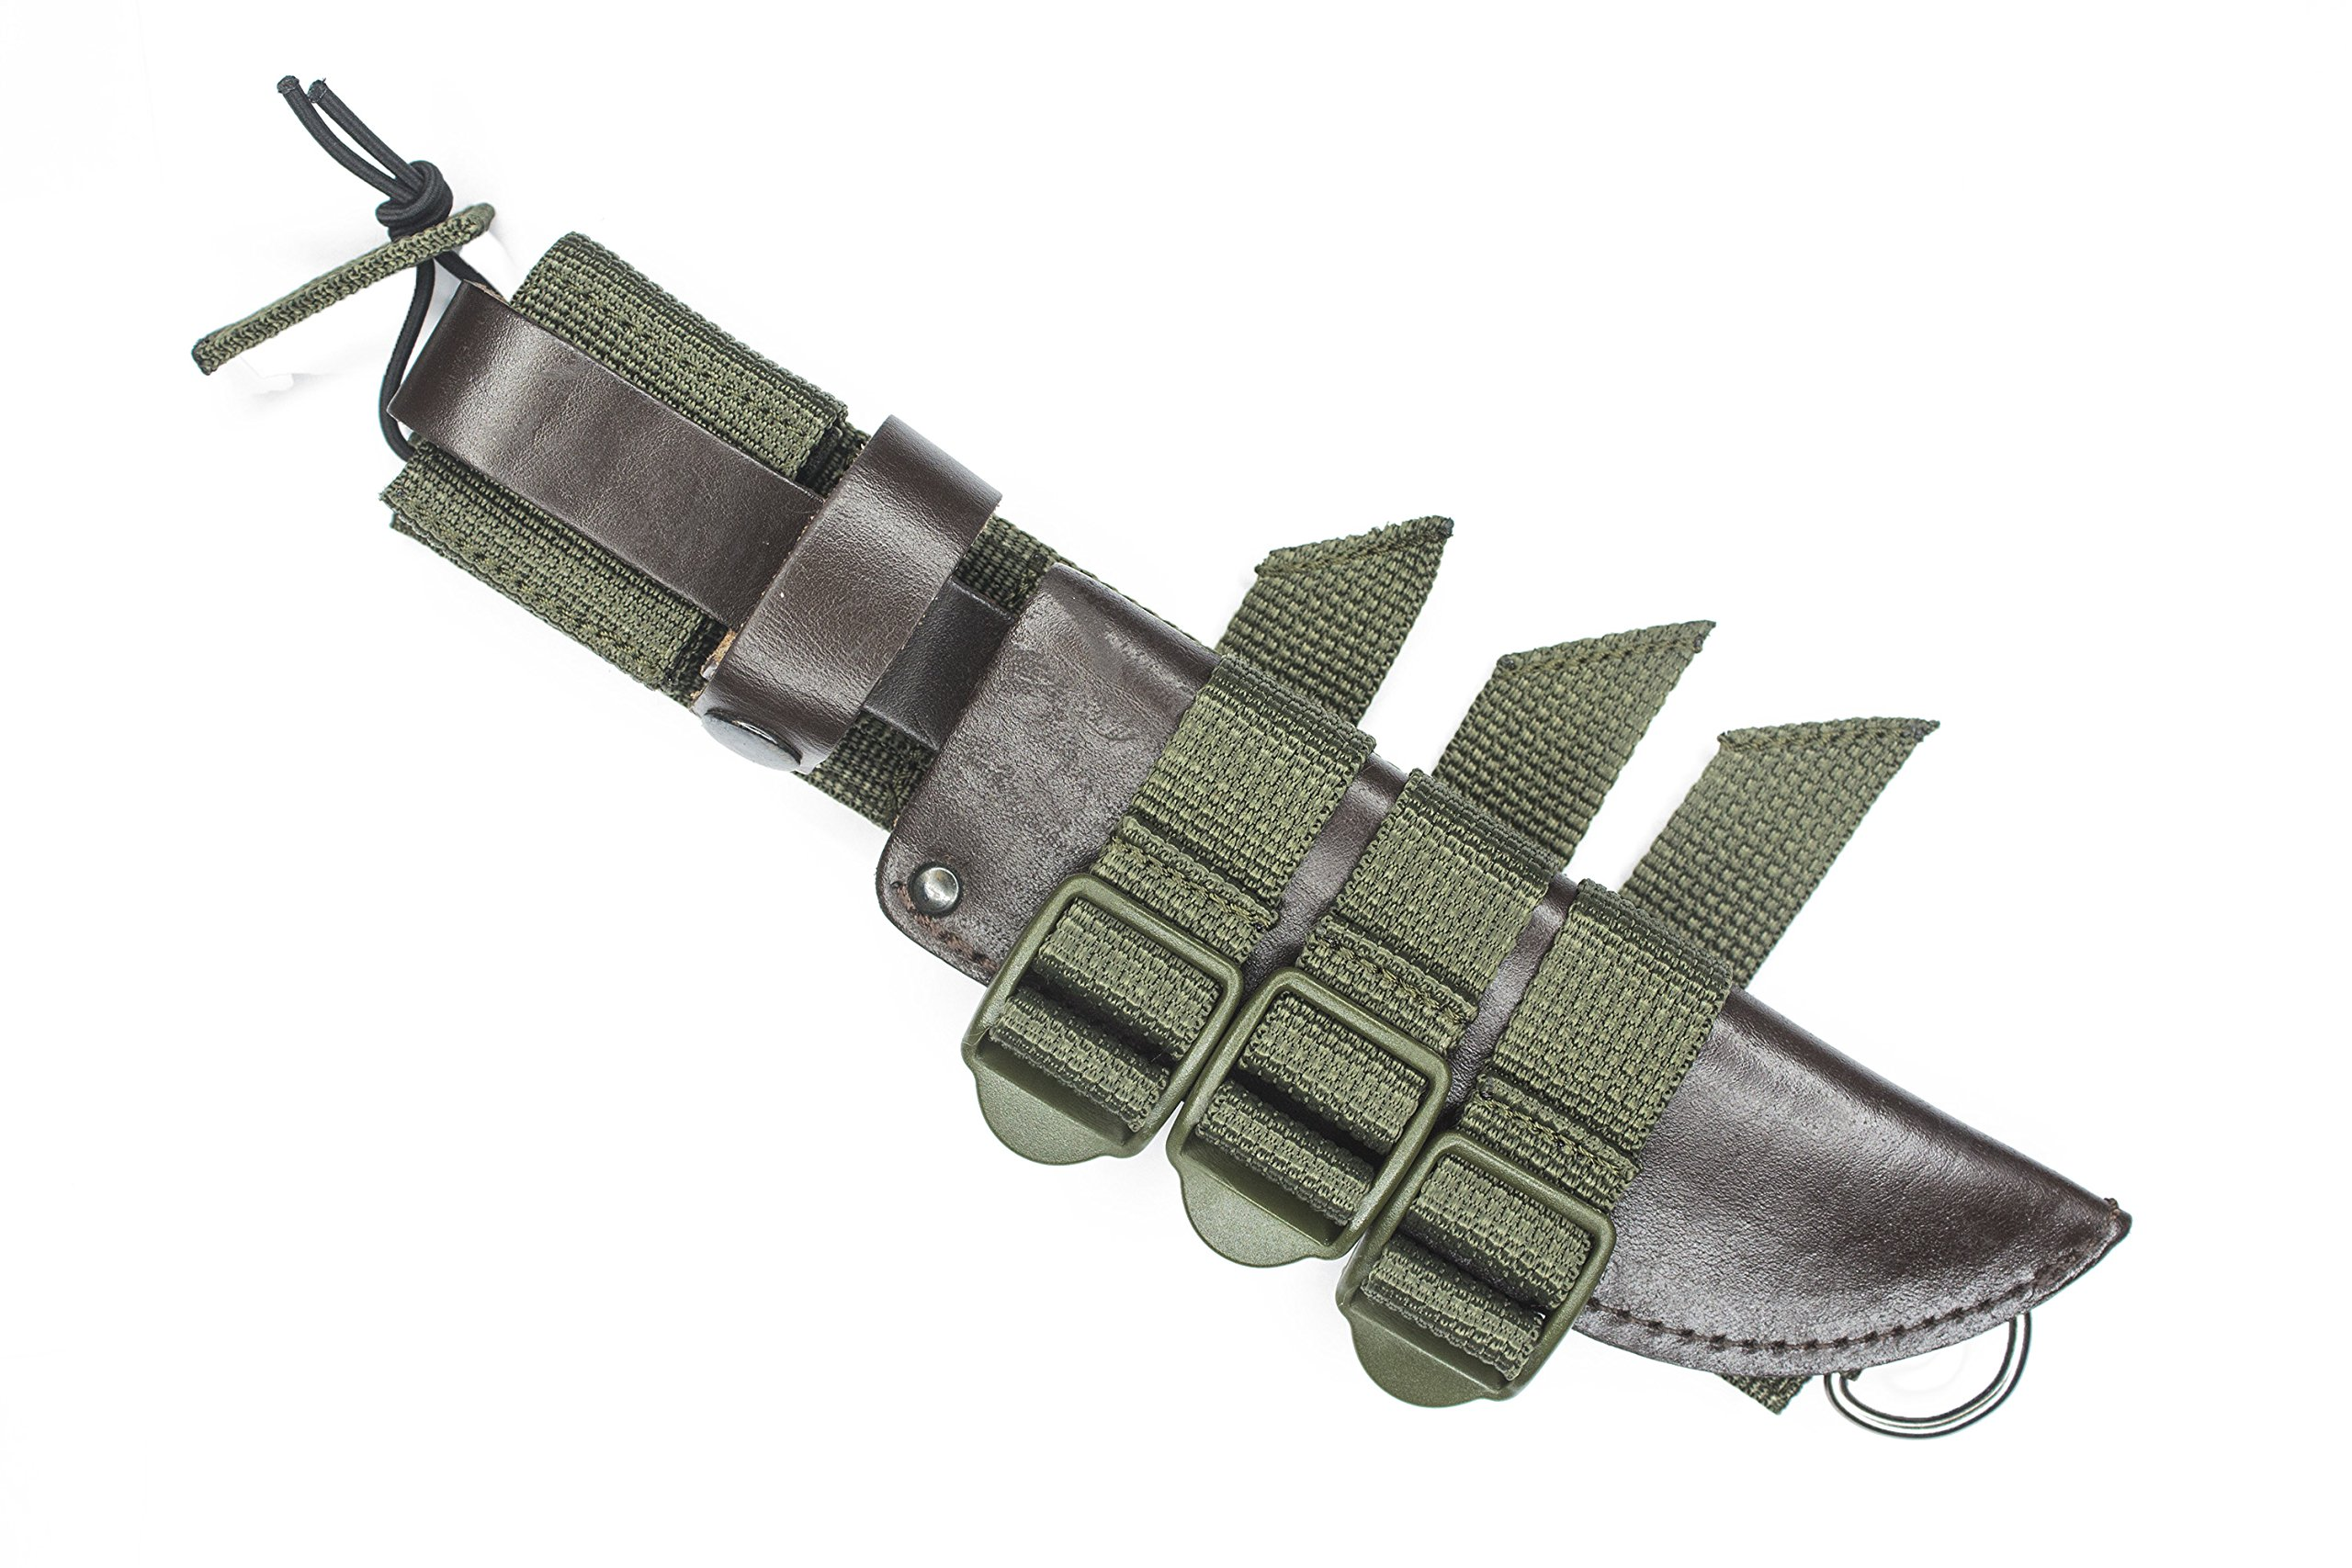 Tactical MOLLE Attachment Gear Adapter for Ka-Bar/Bowie/All-type fixed-blade Knife Sheaths Scabbard Belt Adapter/Knife Carrier/ Nylon Velcro